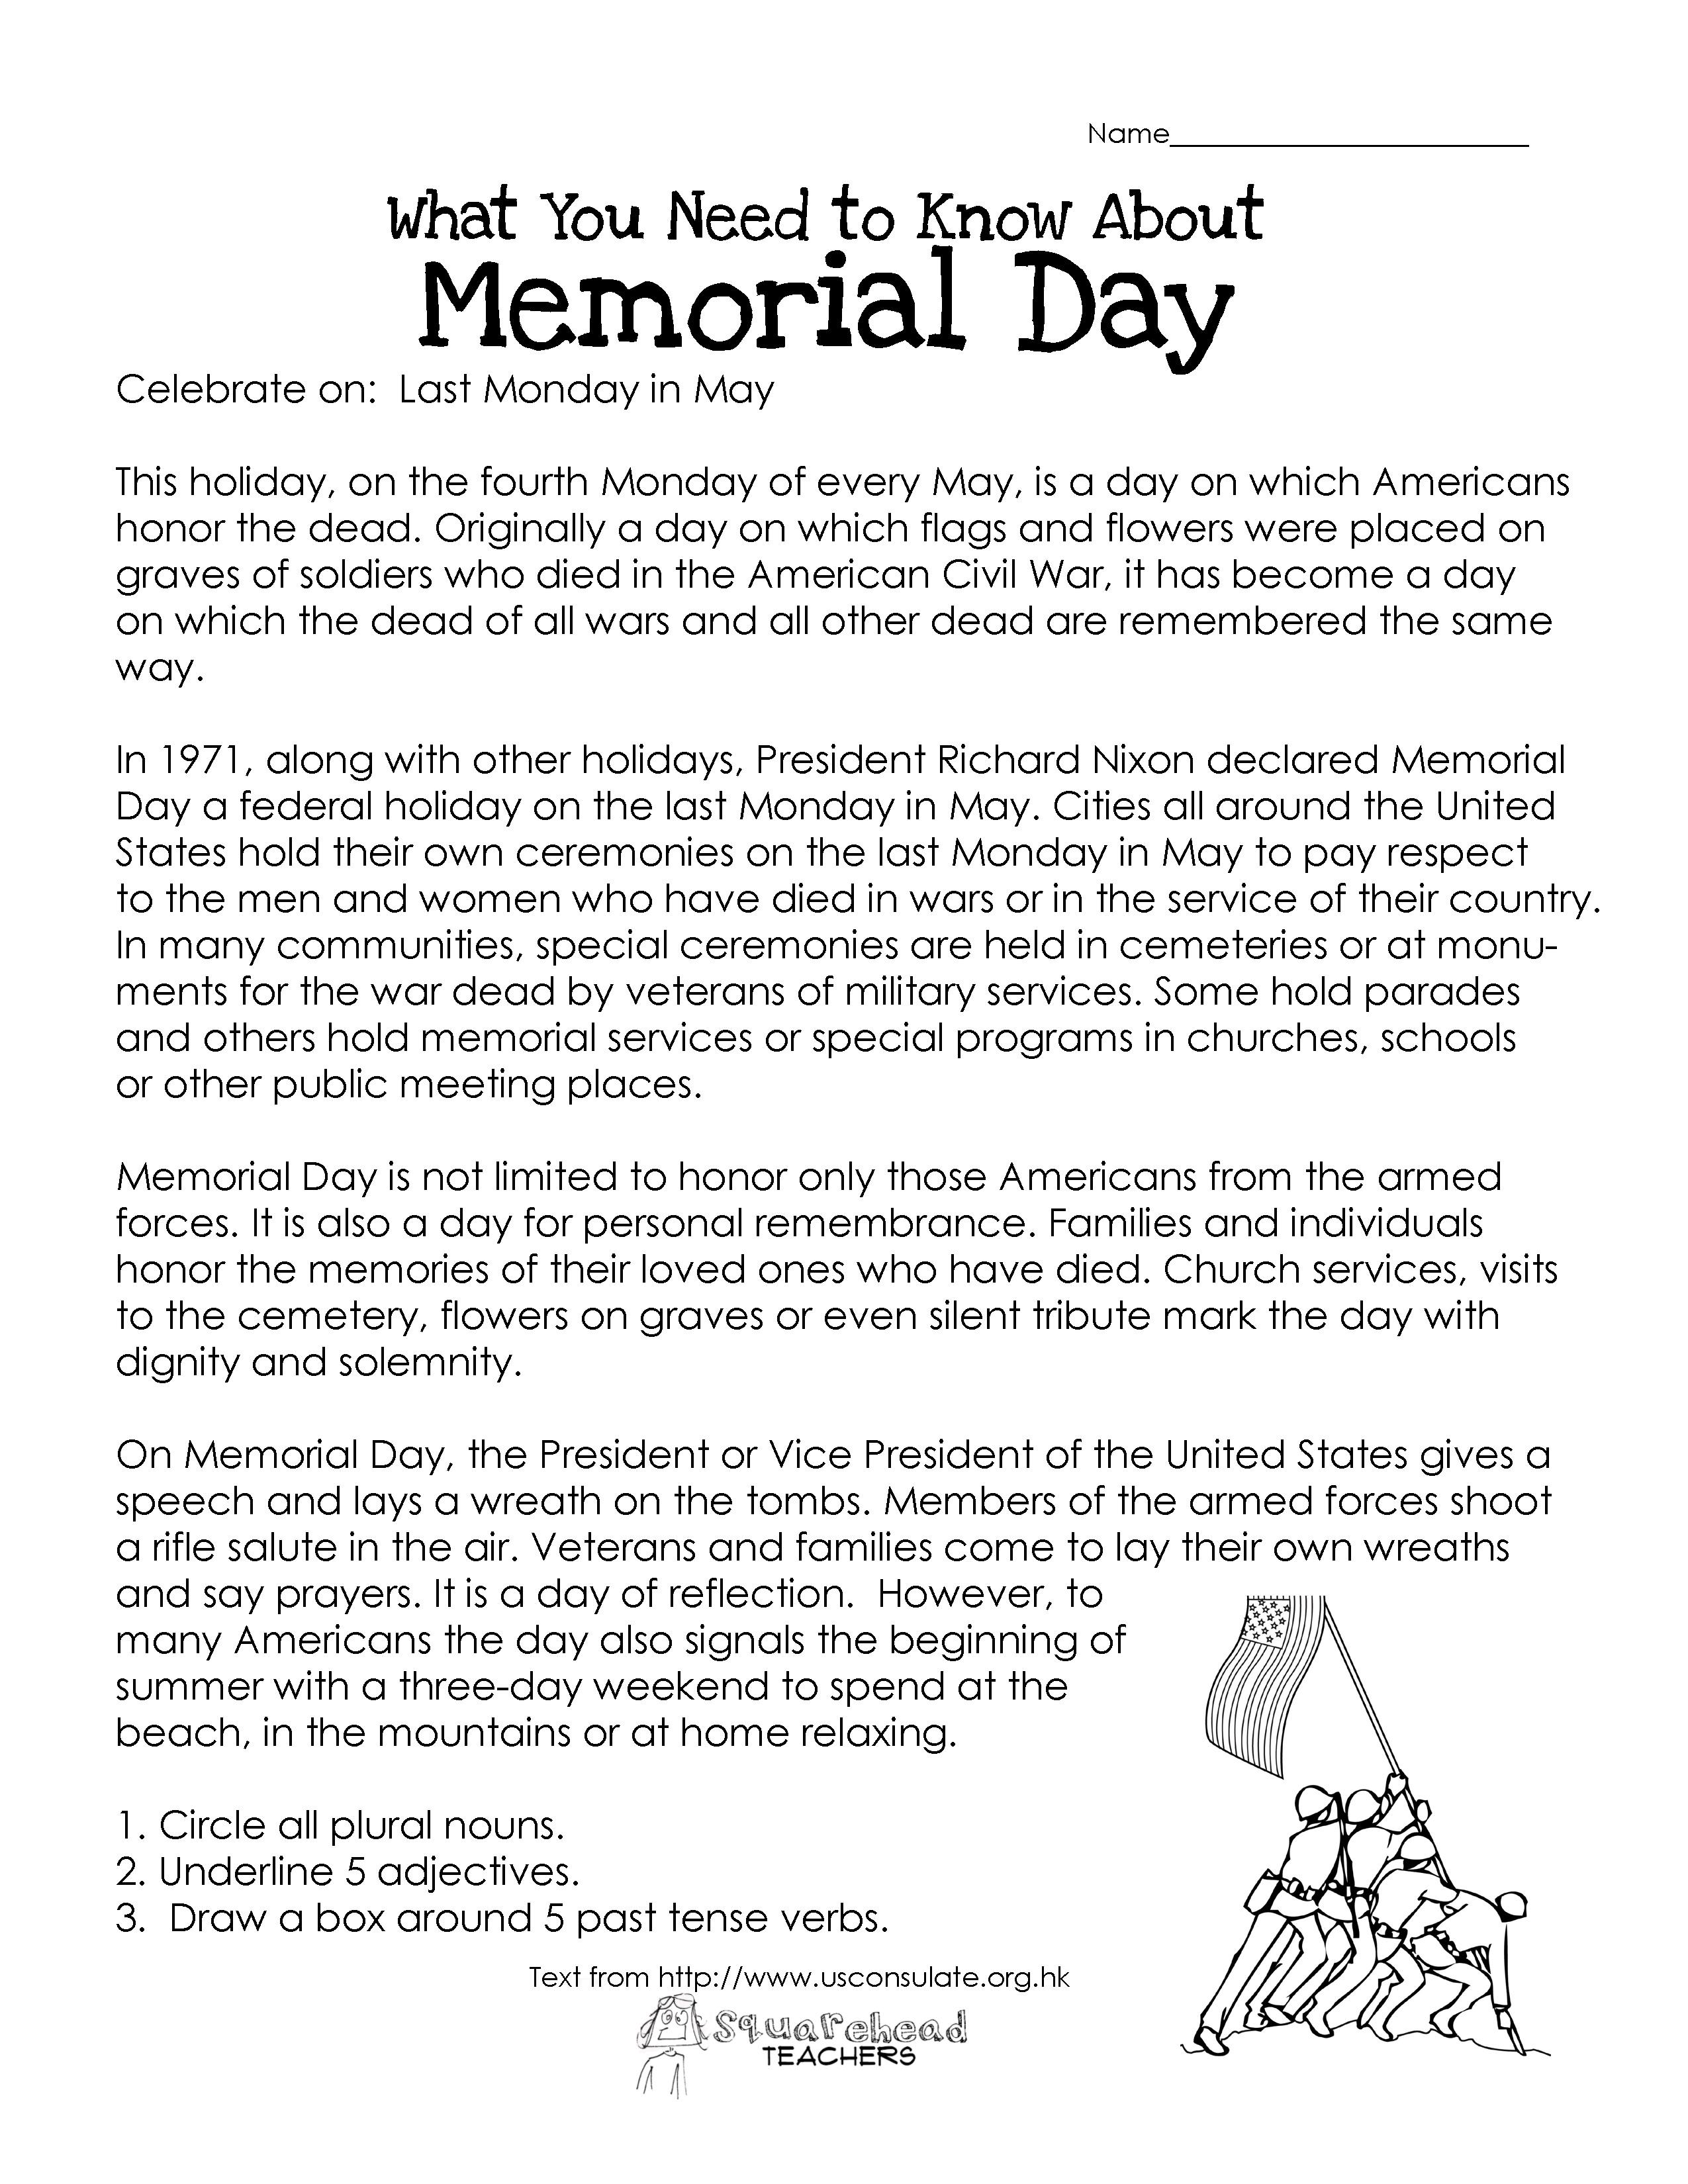 011 Memorial1 Essay Example Veterans Best Day Writing Prompts Elementary Contest Ideas Full